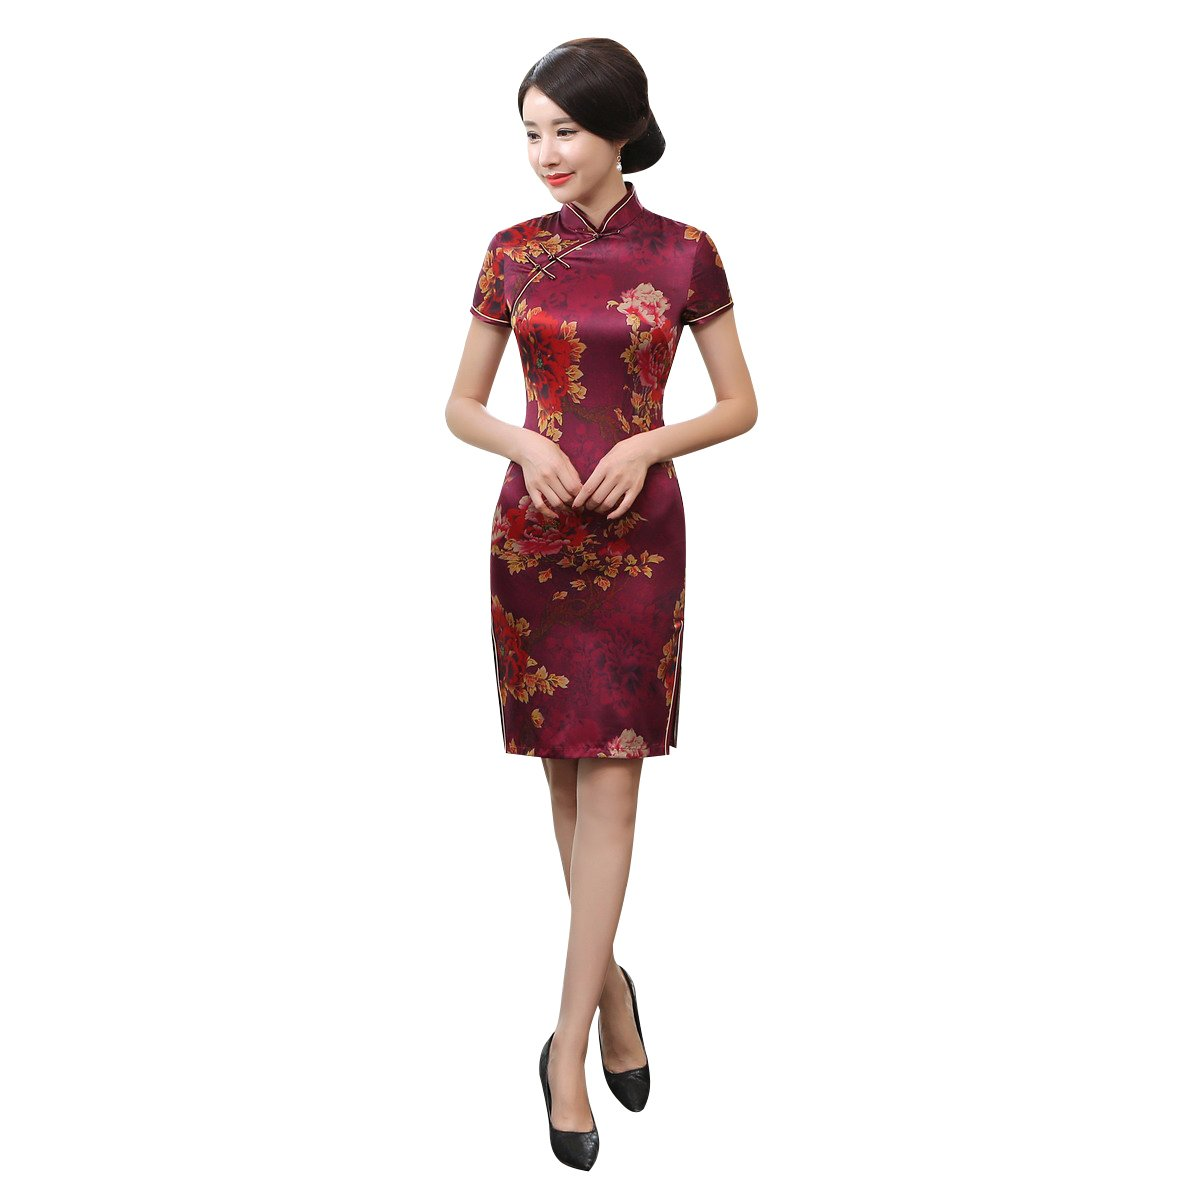 ACVIP Women Short Sleeve Floral Vintage Chinese Slim Short Qipao Cheongsam (China 2XL/Bust:37.0'')